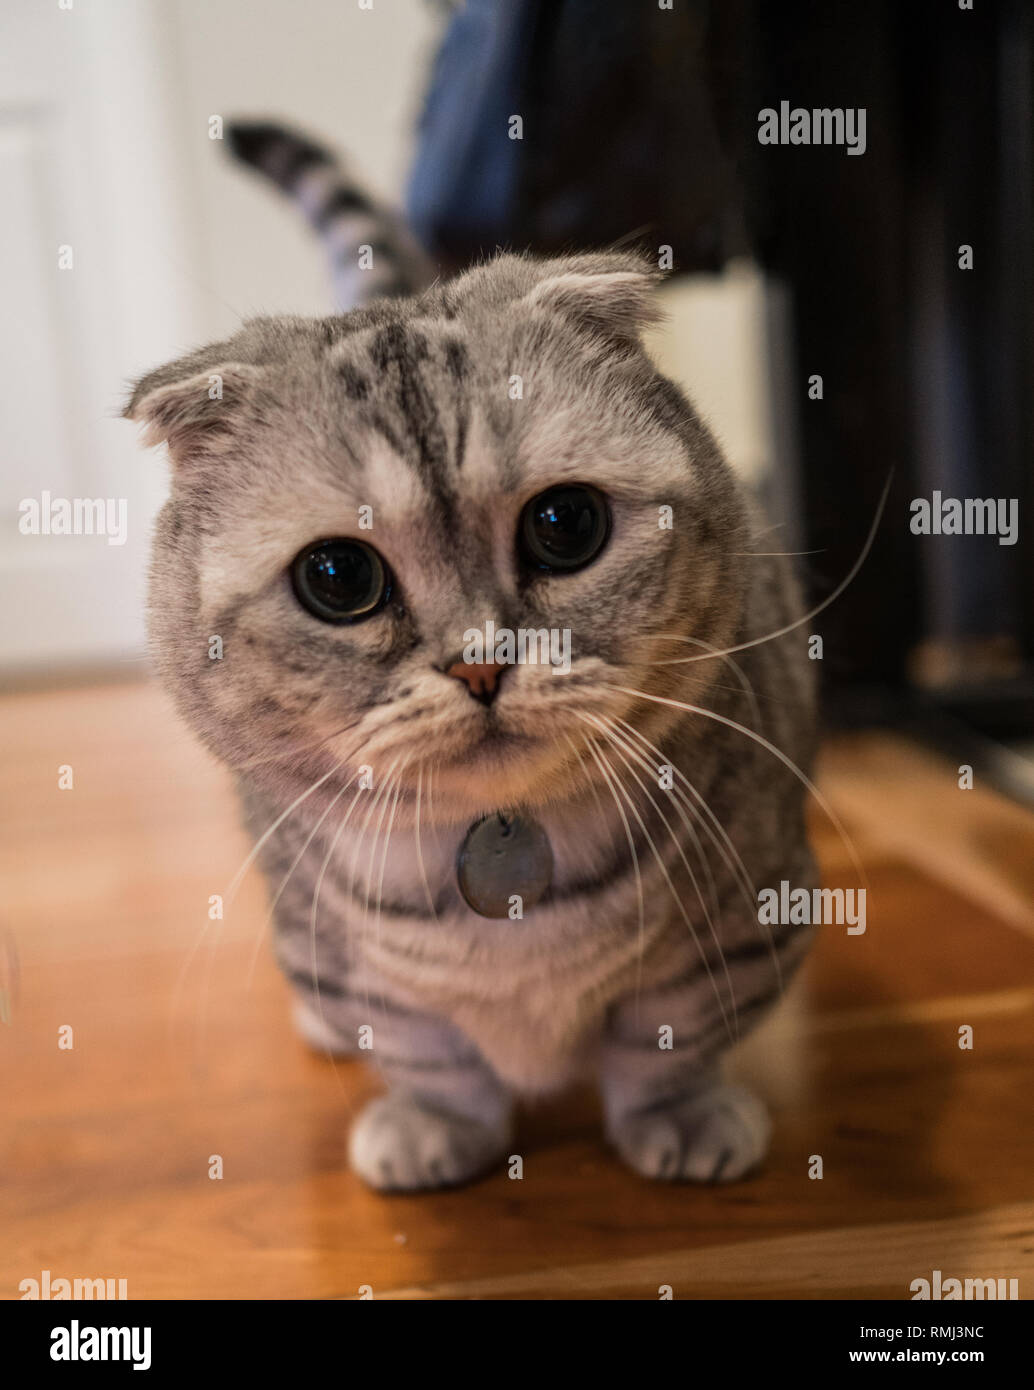 Adorable young white and grey Scottish fold munchkin cat. - Stock Image